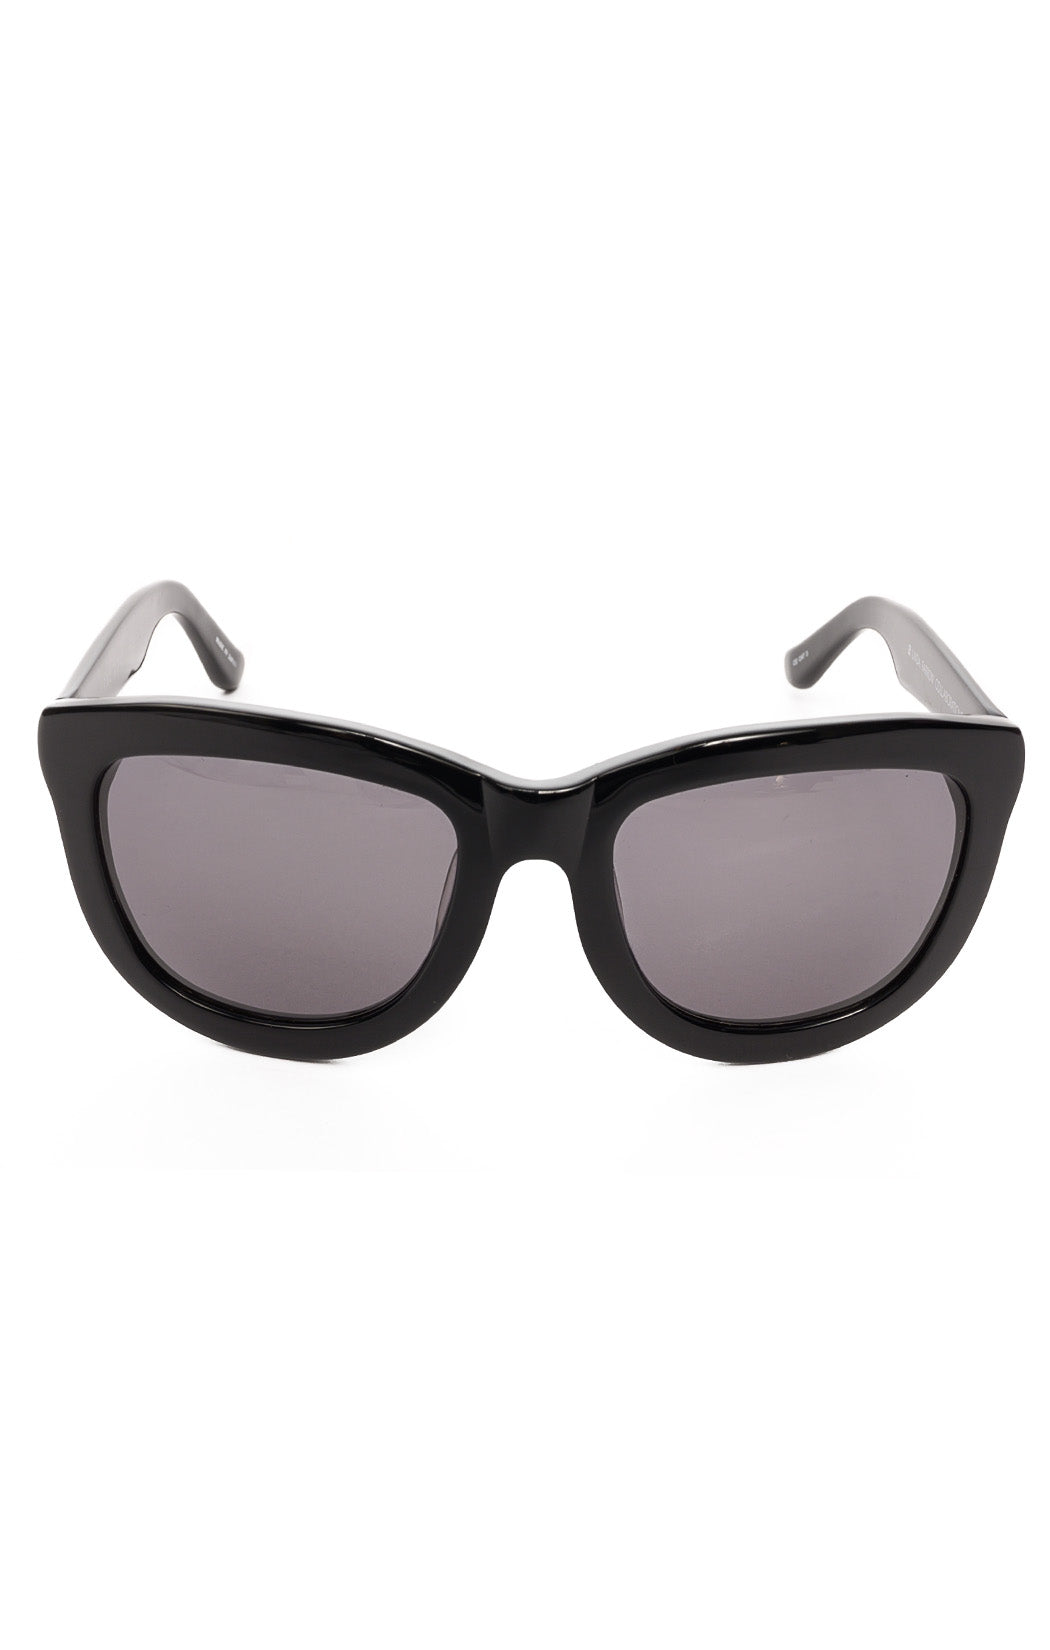 "Front view of THE ROW x LINDA FARROW  Sunglasses  Size: 5.75"" W x 2.25"" L"